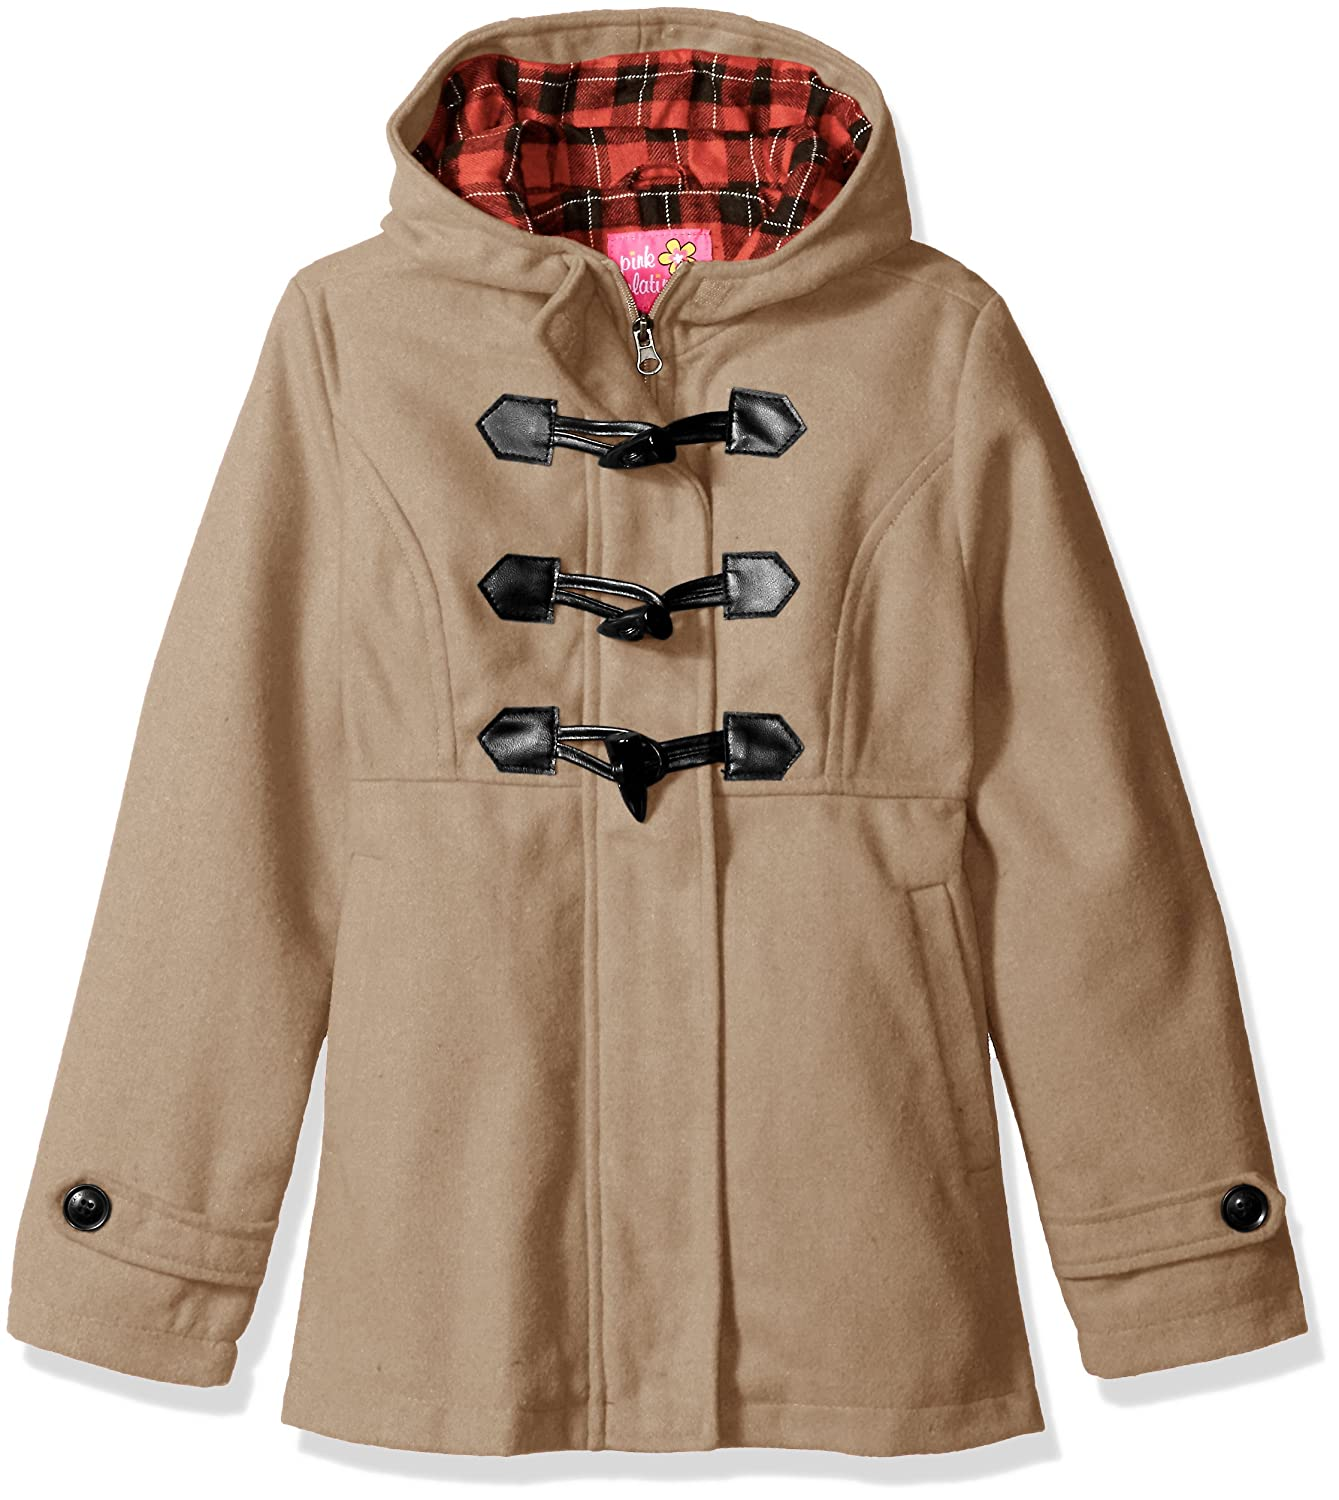 Dressy Coats For Girls Han Coats